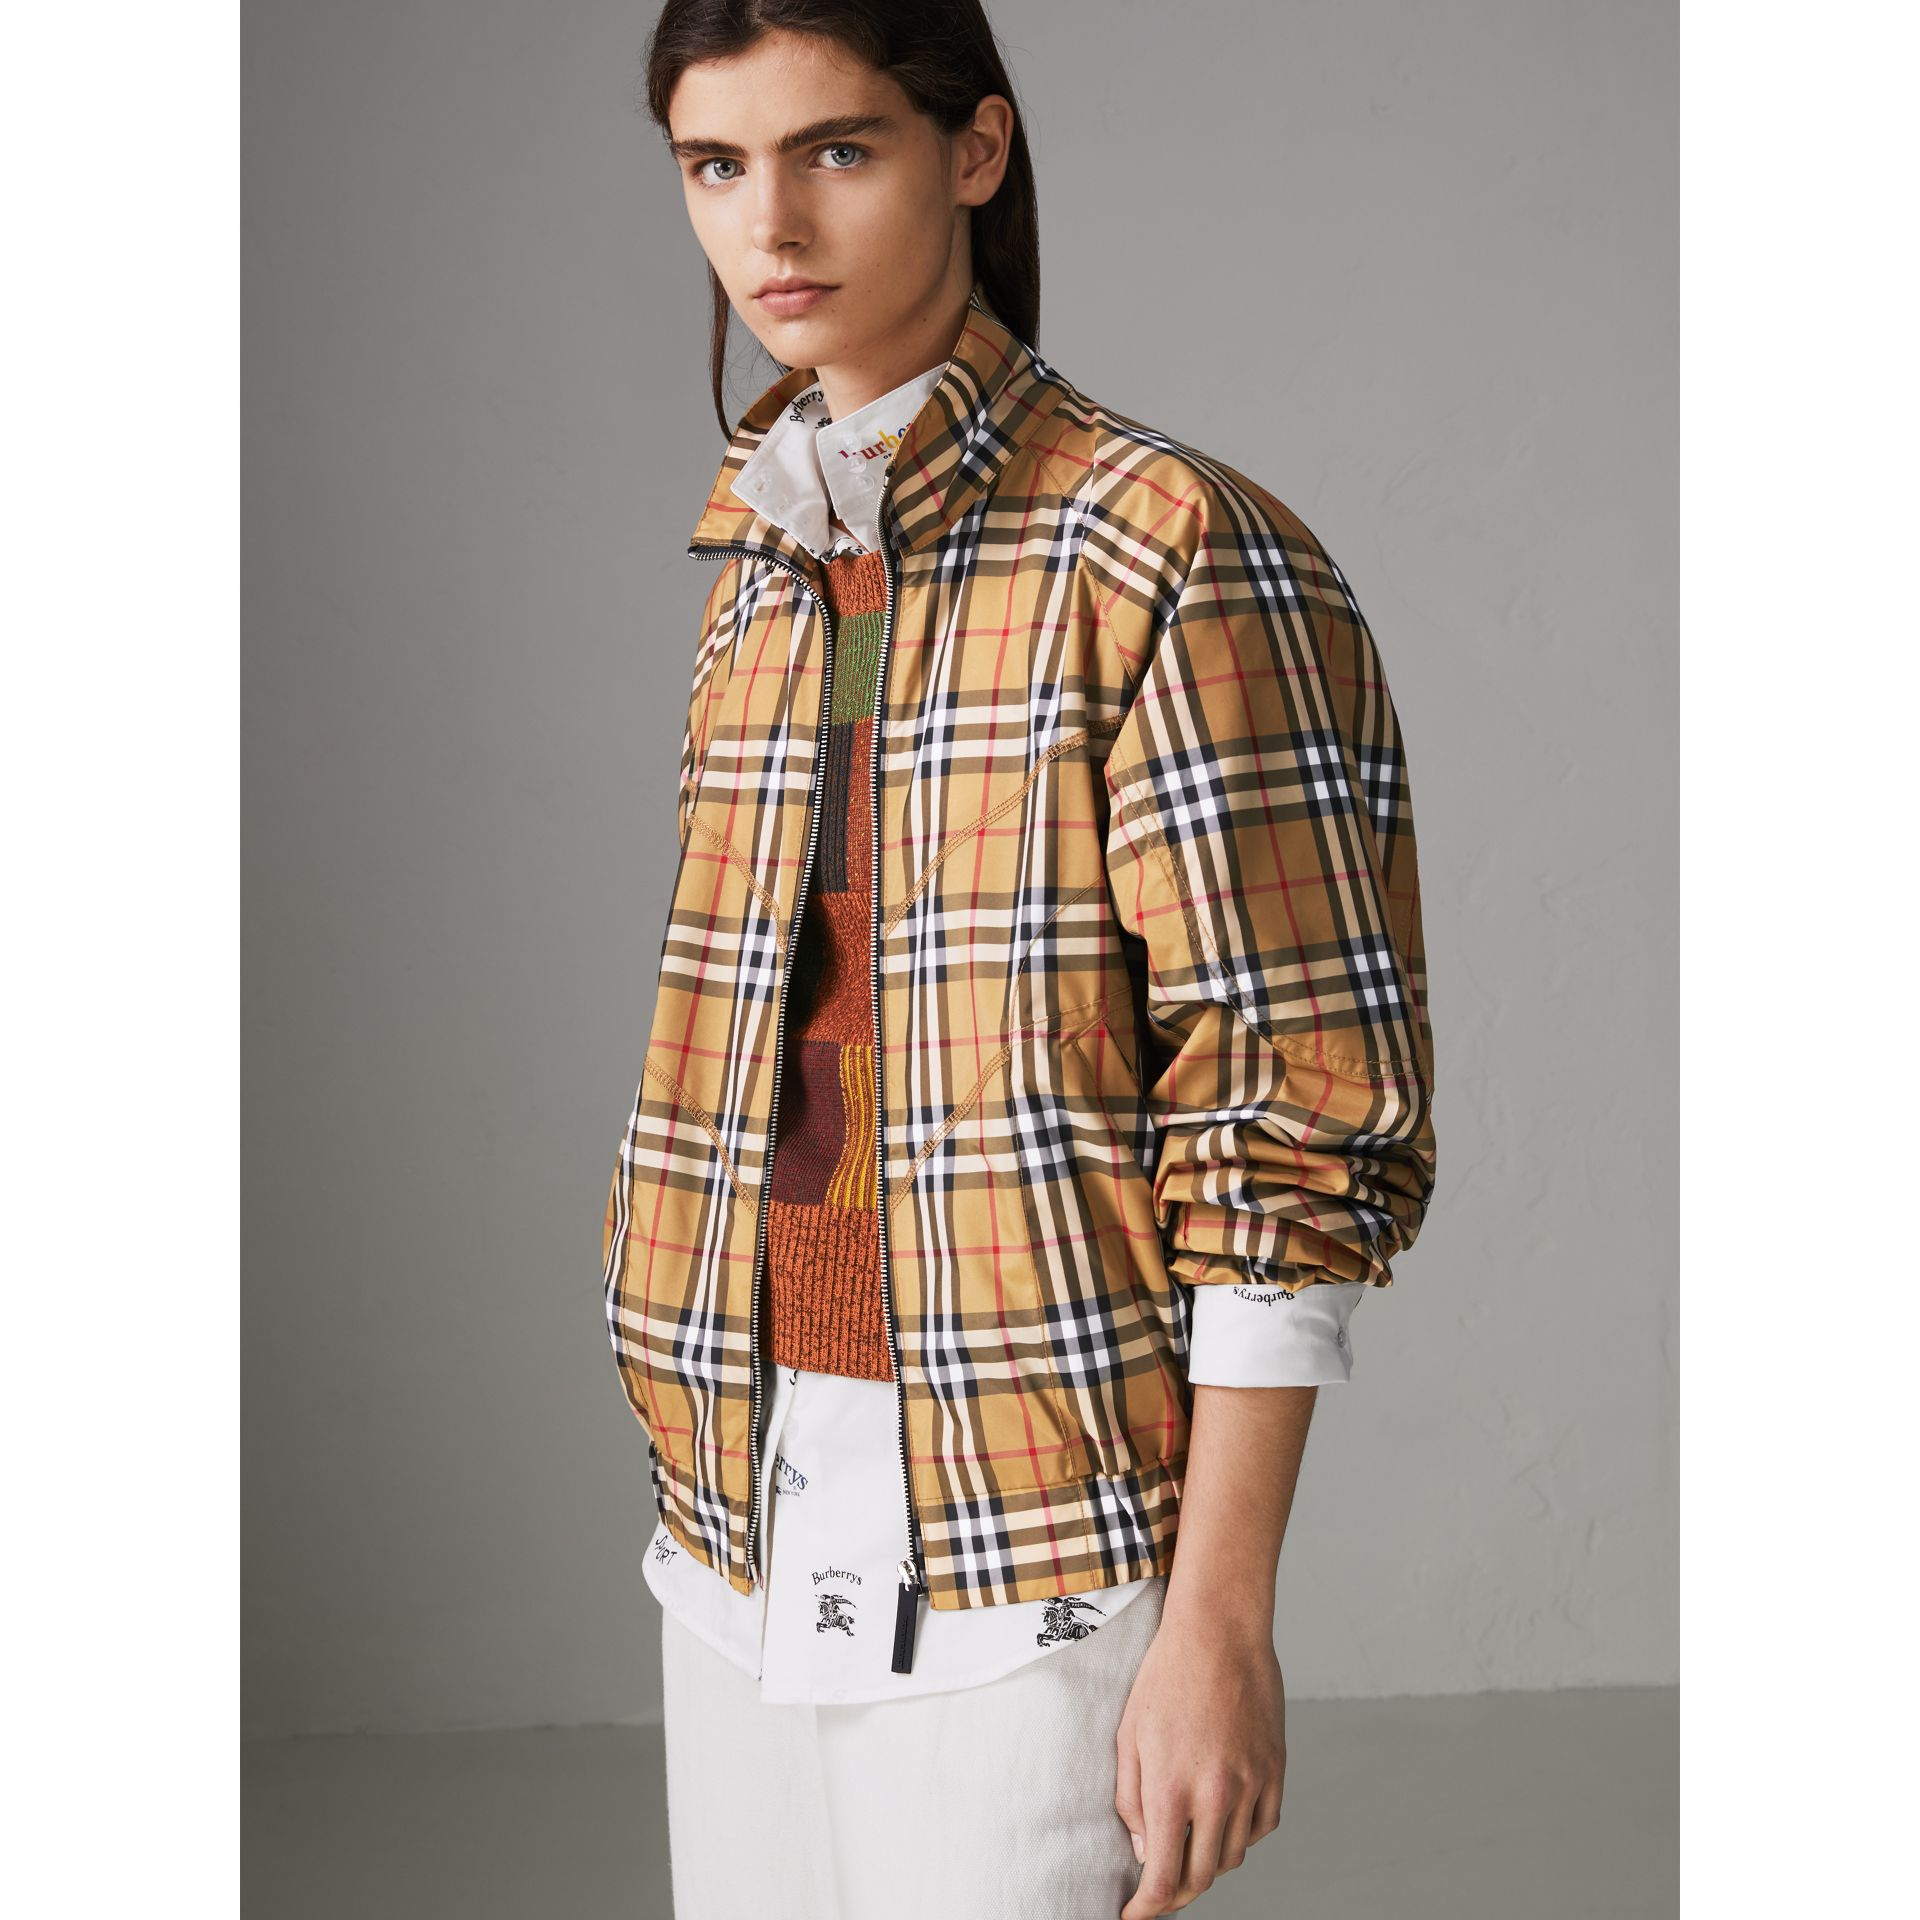 Topstitch Detail Vintage Check Harrington Jacket in Antique Yellow - Women | Burberry - gallery image 5